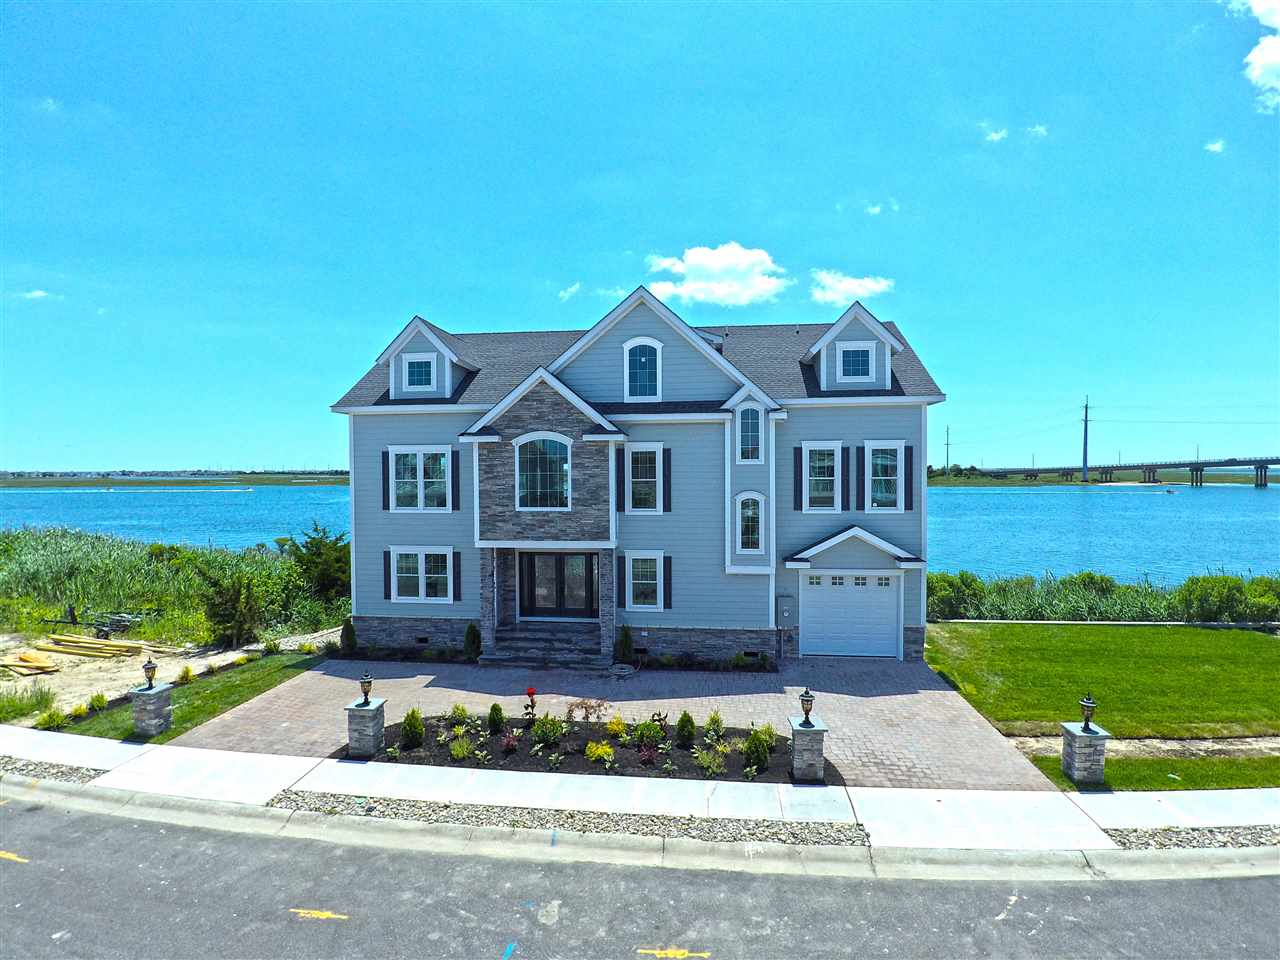 49 Seabreeze, Avalon Manor, NJ 08202